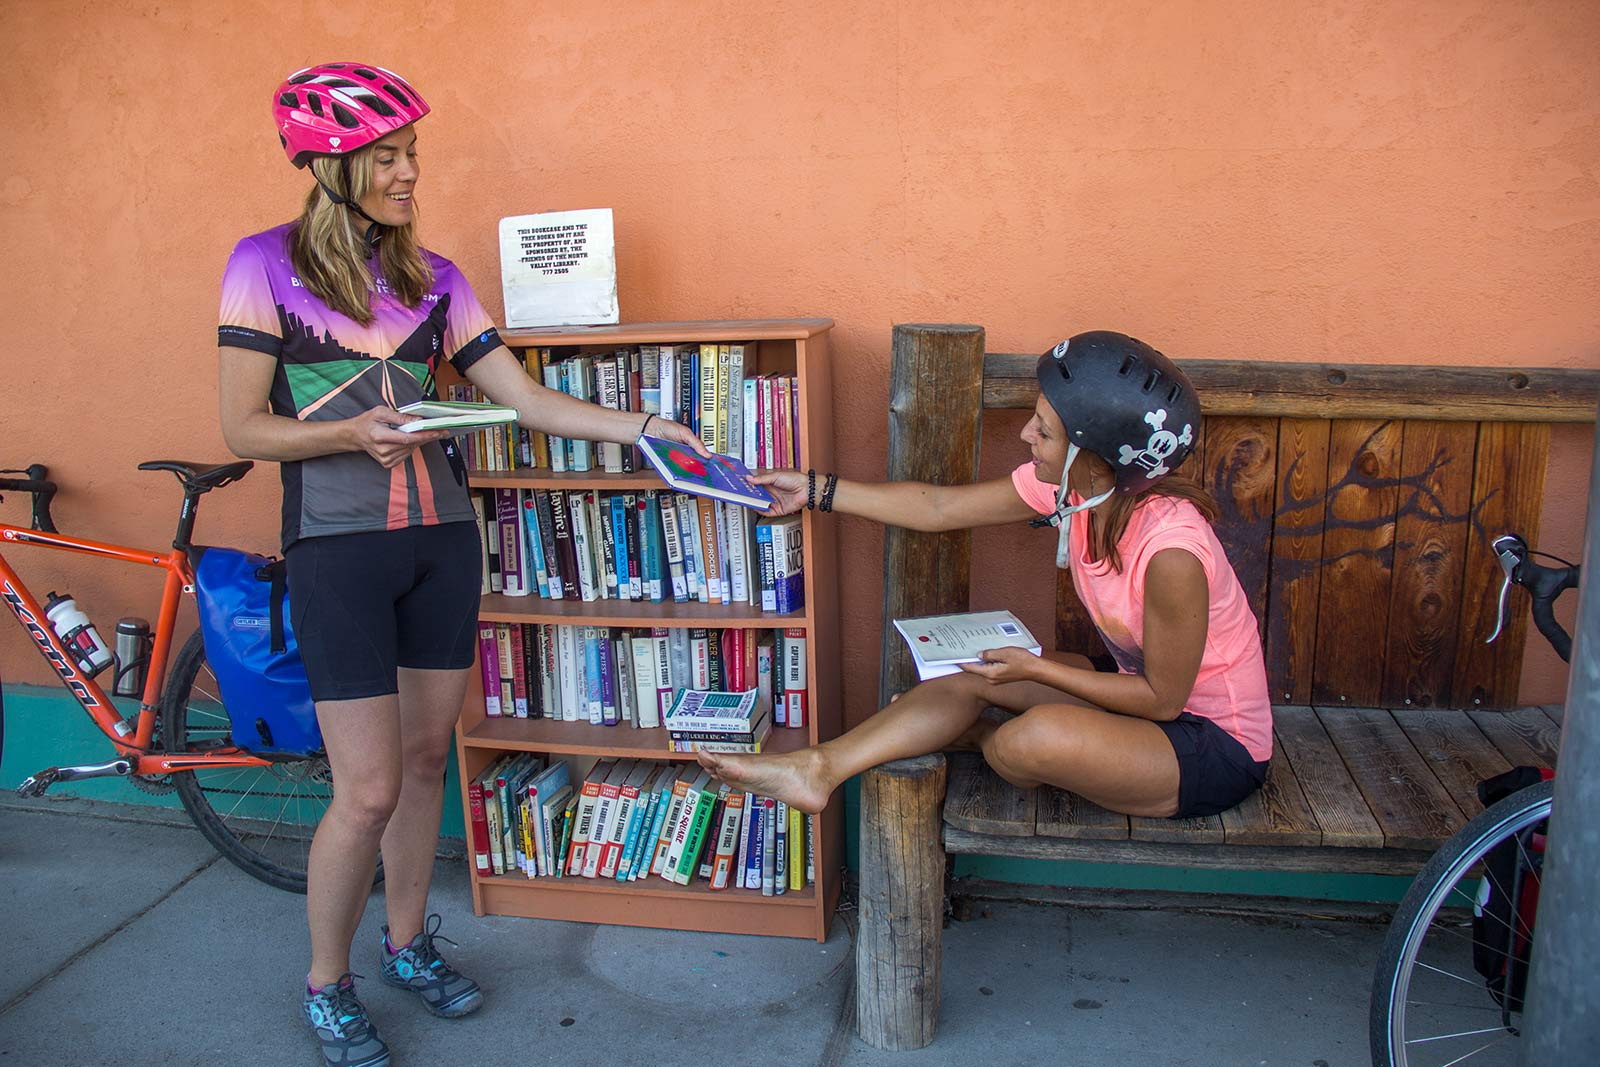 Cyclists look through books during a break from biking the Bitterroot Trail